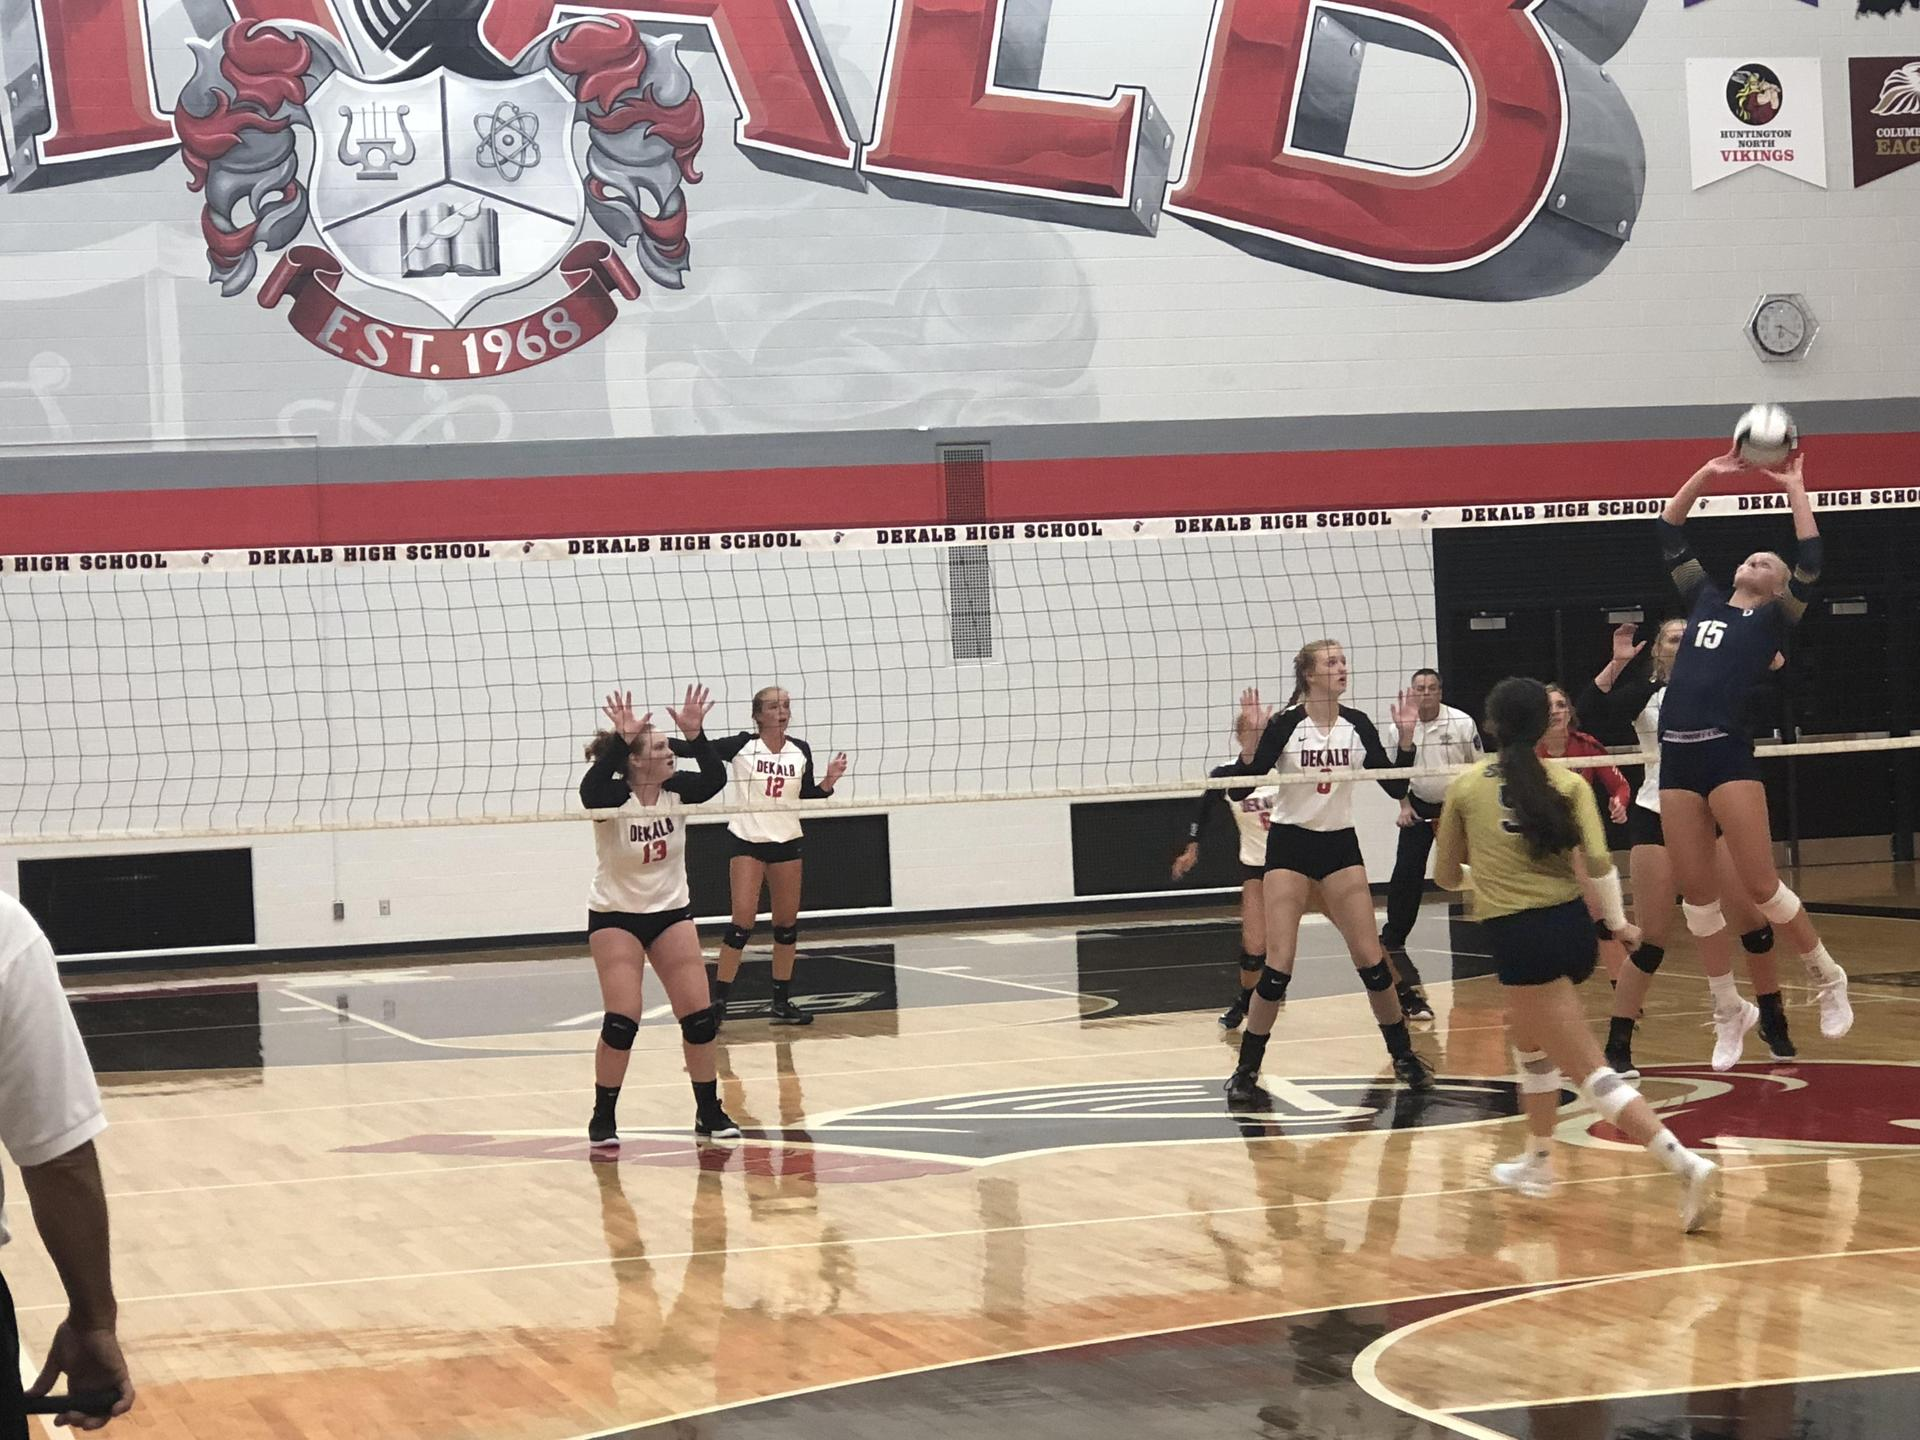 2018 Lady Baron Volleyball